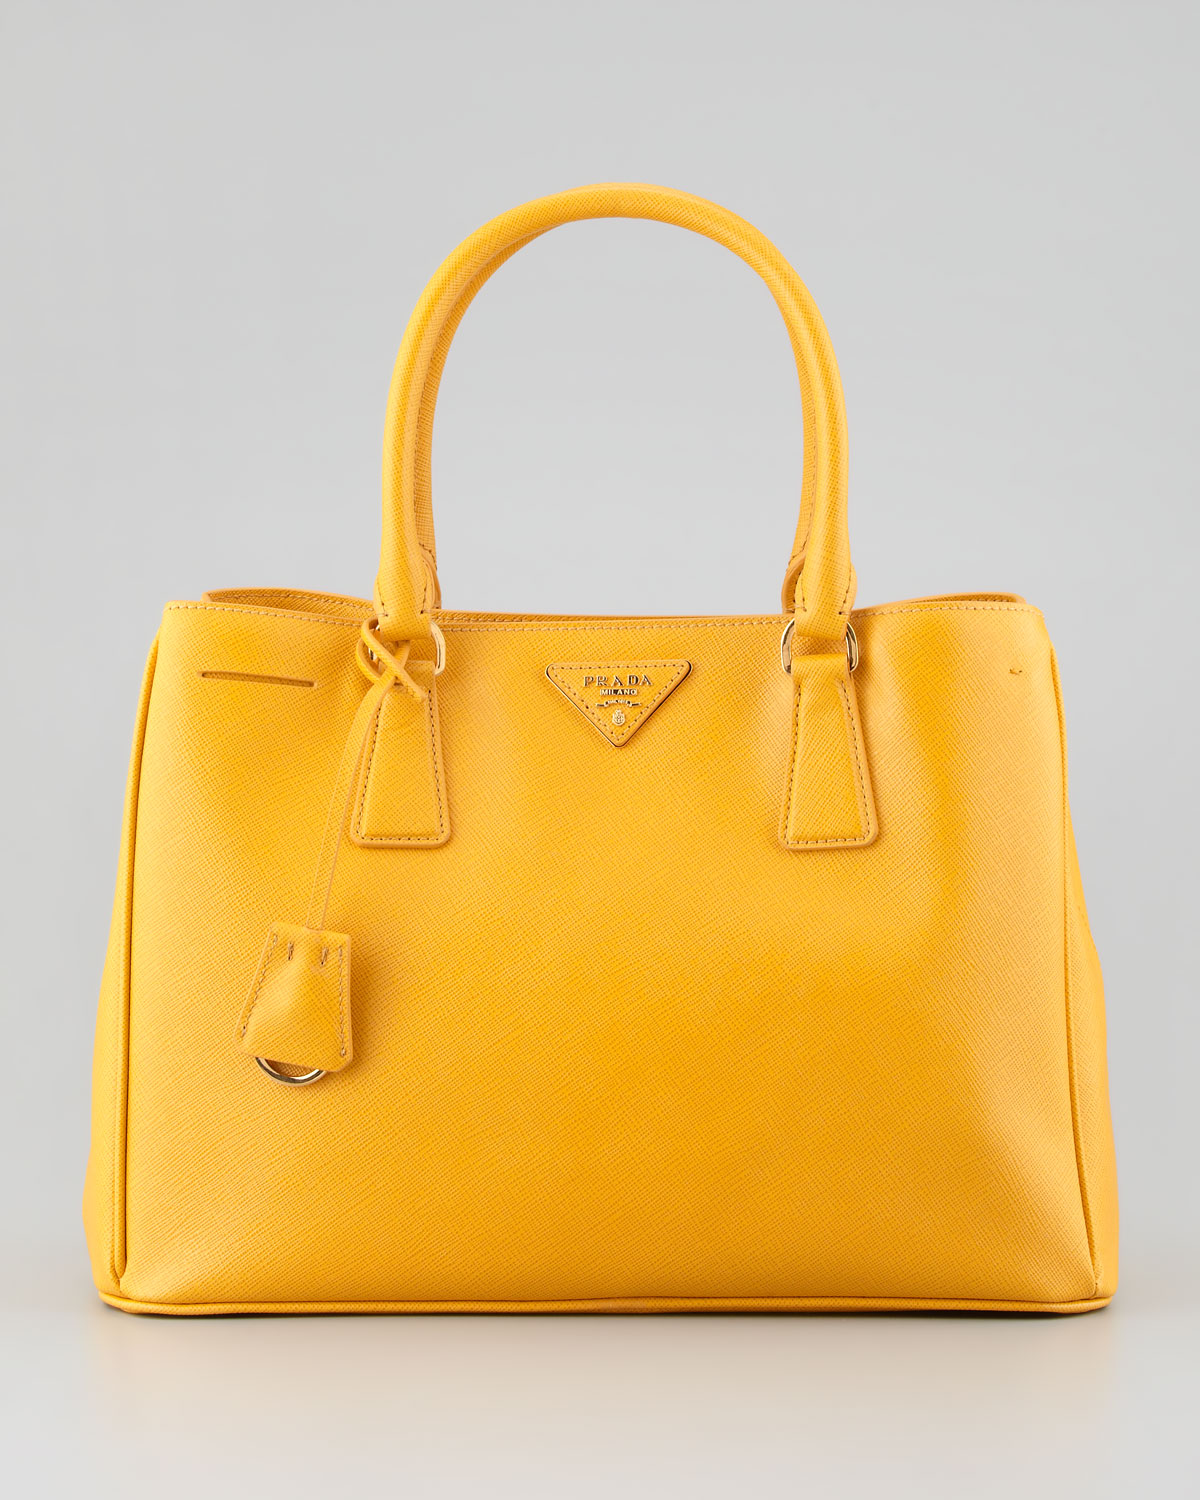 Prada Handbags Yellow